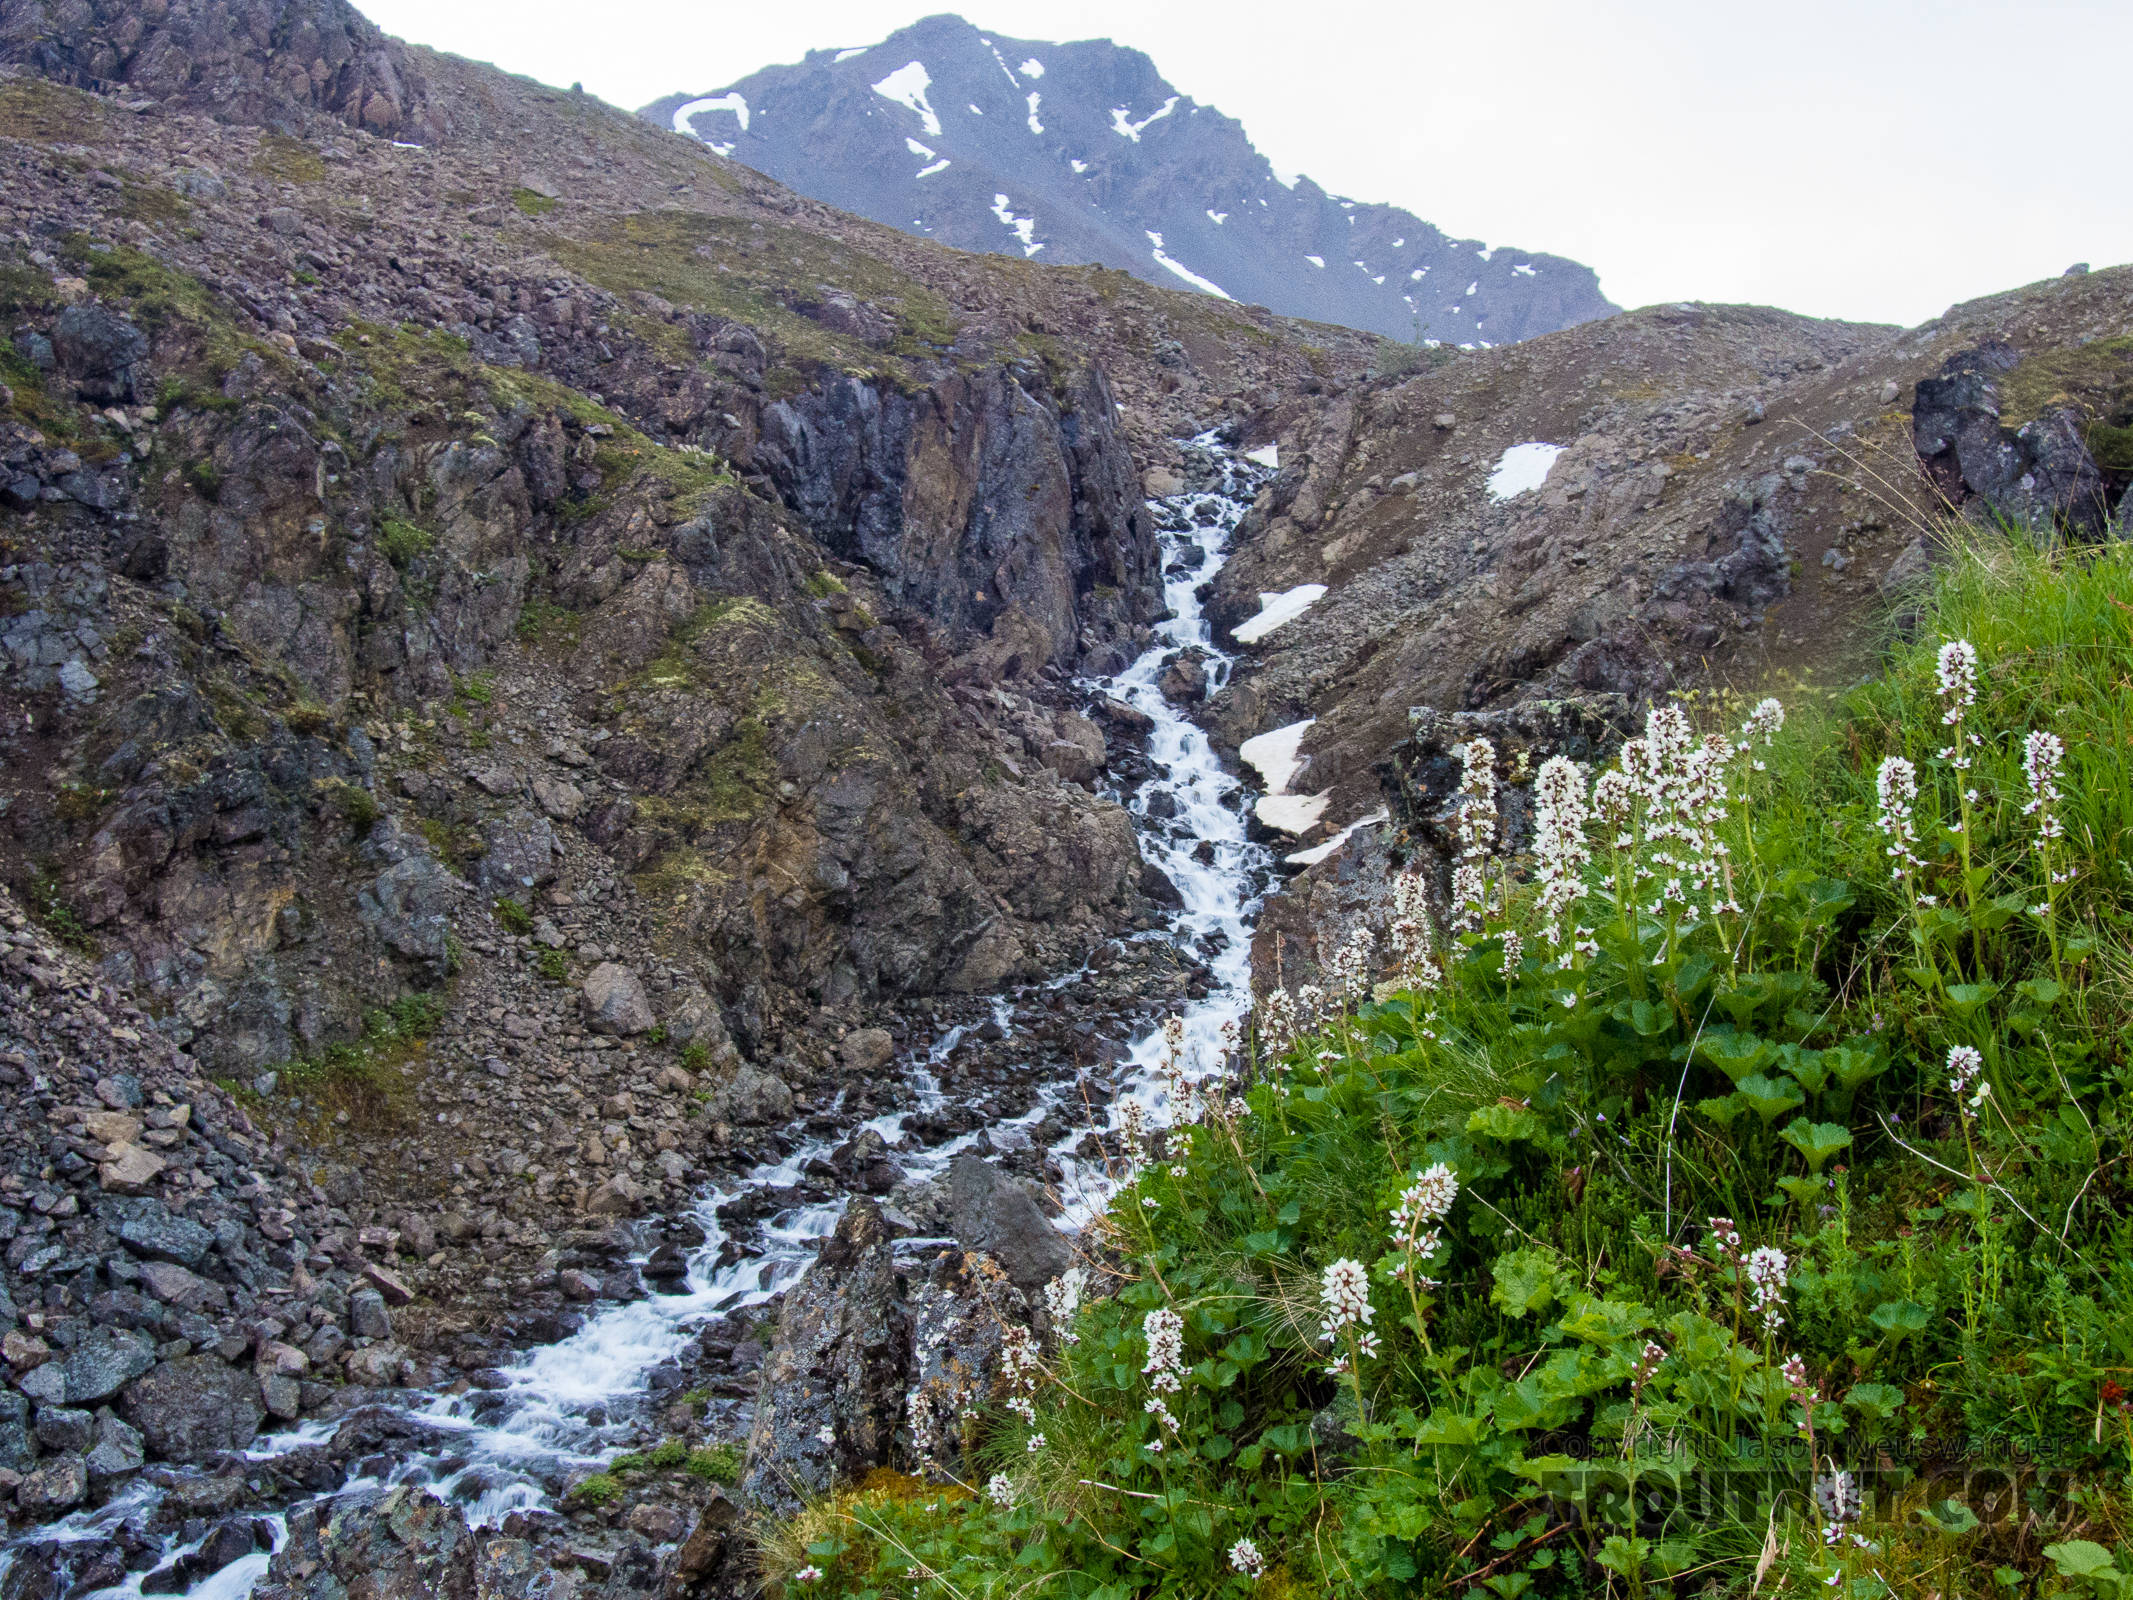 South Fork Pass Creek flowing through a little canyon From the South Fork of Pass Creek in Alaska.